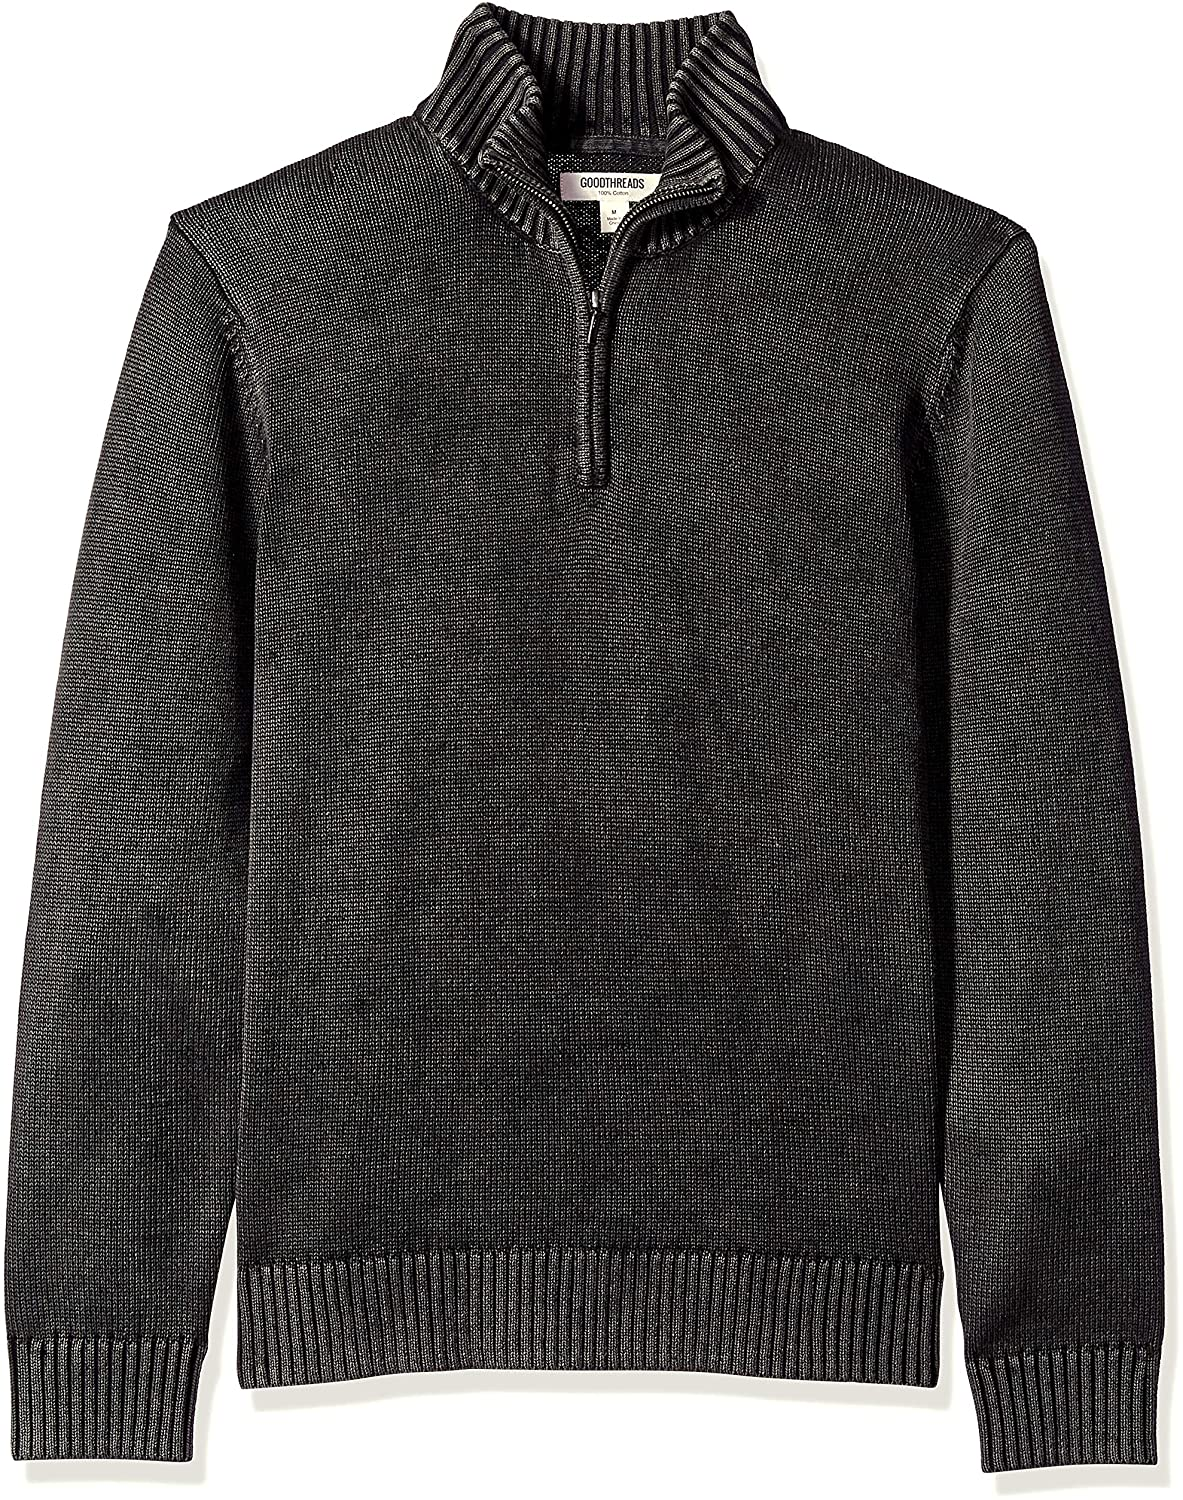 TALLA Medium. Goodthreads Soft Cotton Quarter Zip Sweater - Sudadera Hombre